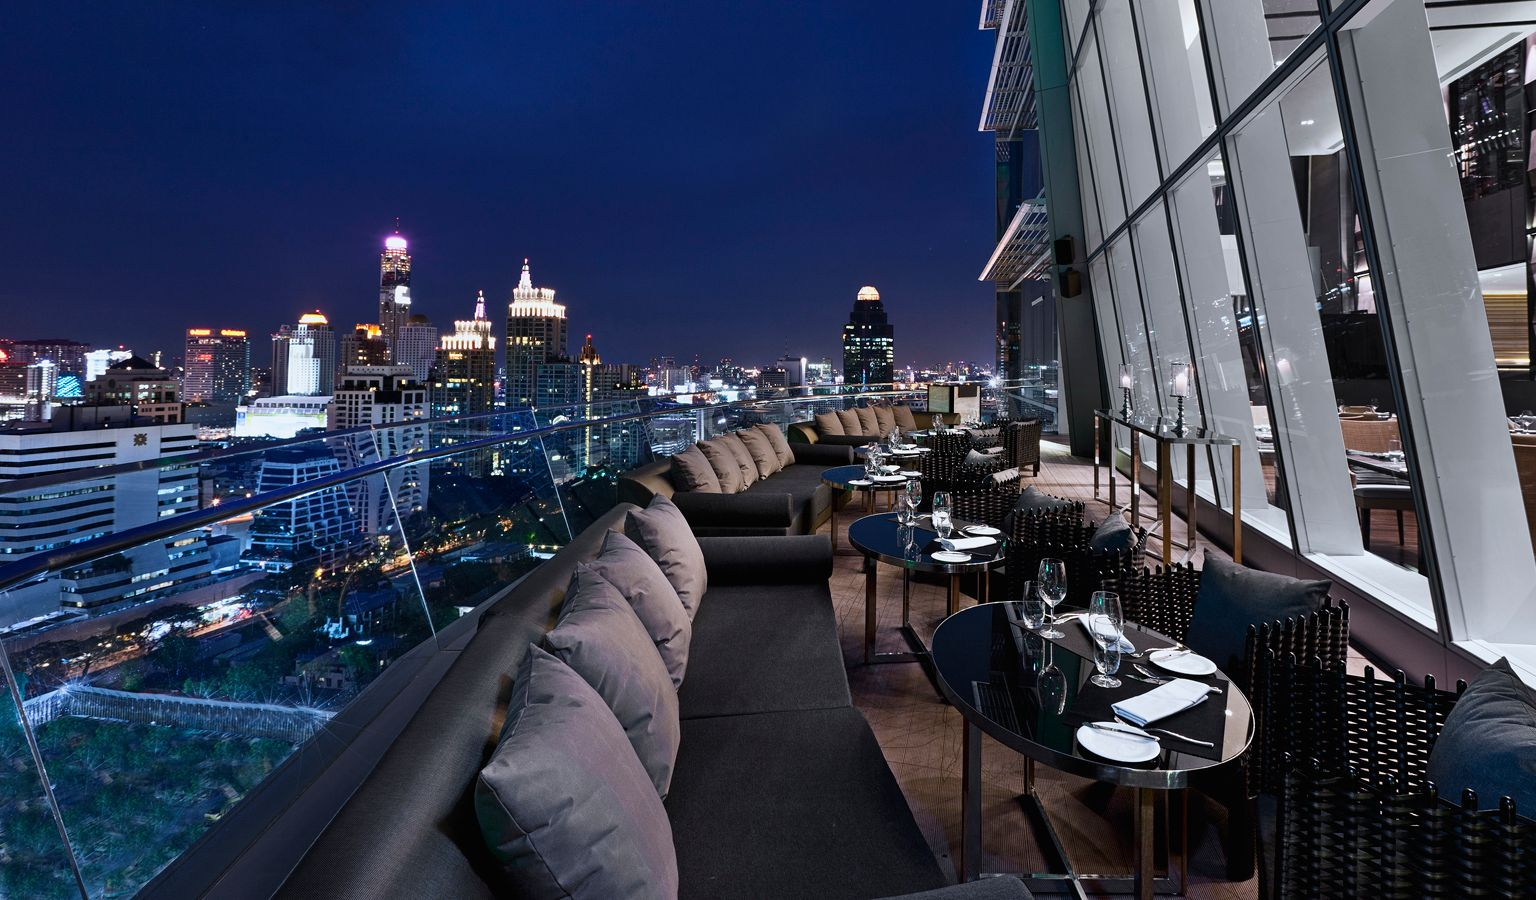 Het terrasmet loungebanken van Up & Above Restaurant and Bar (The Okura Prestige) in Bangkok, Thailand